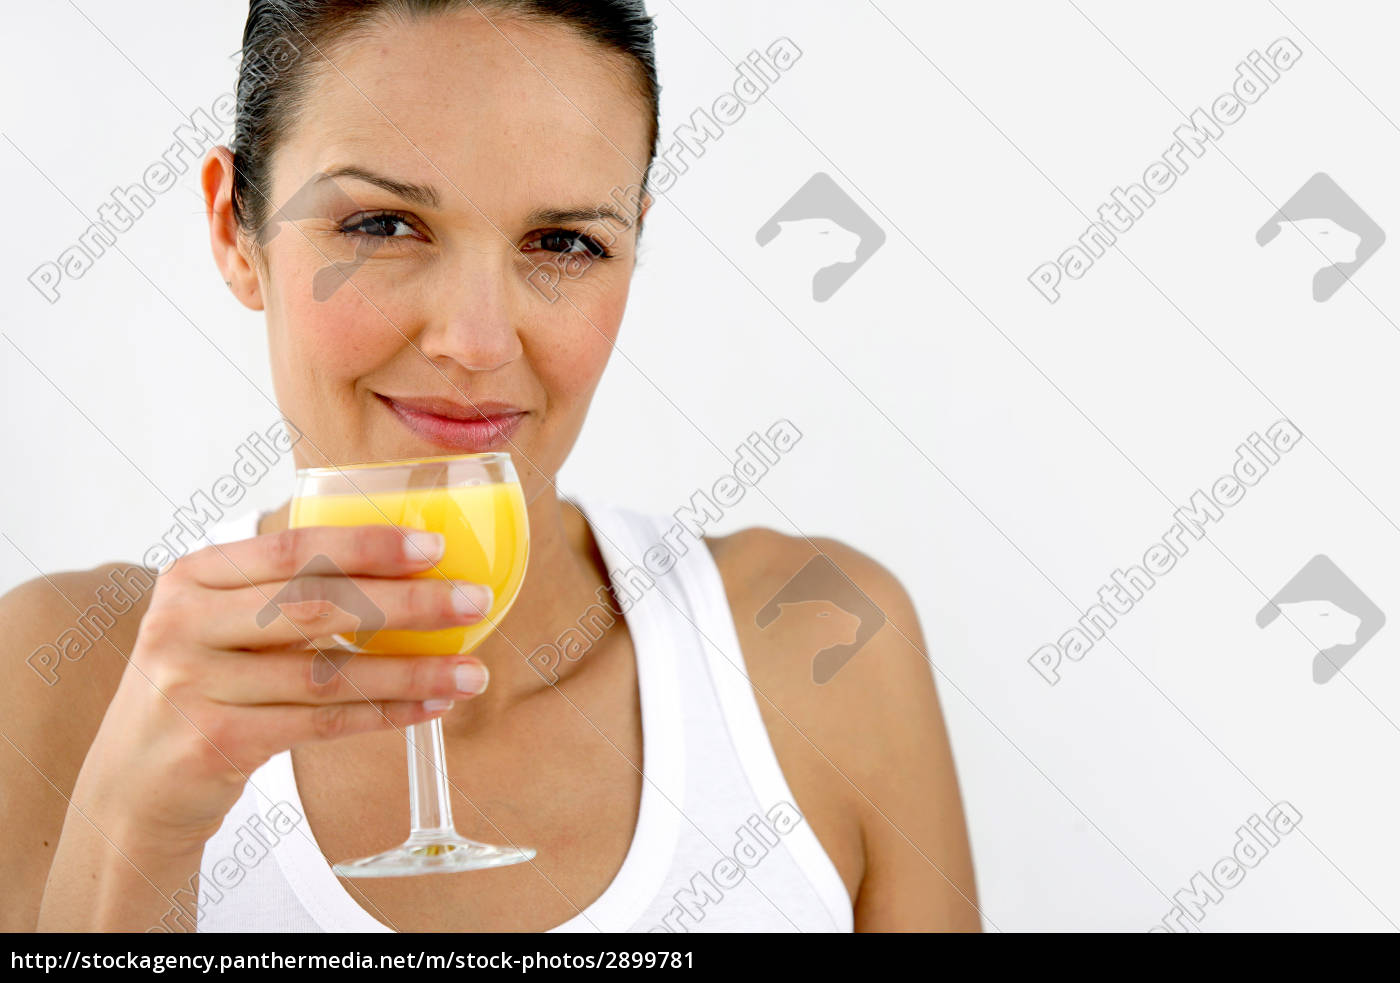 woman, laugh, laughs, laughing, twit, giggle - 2899781